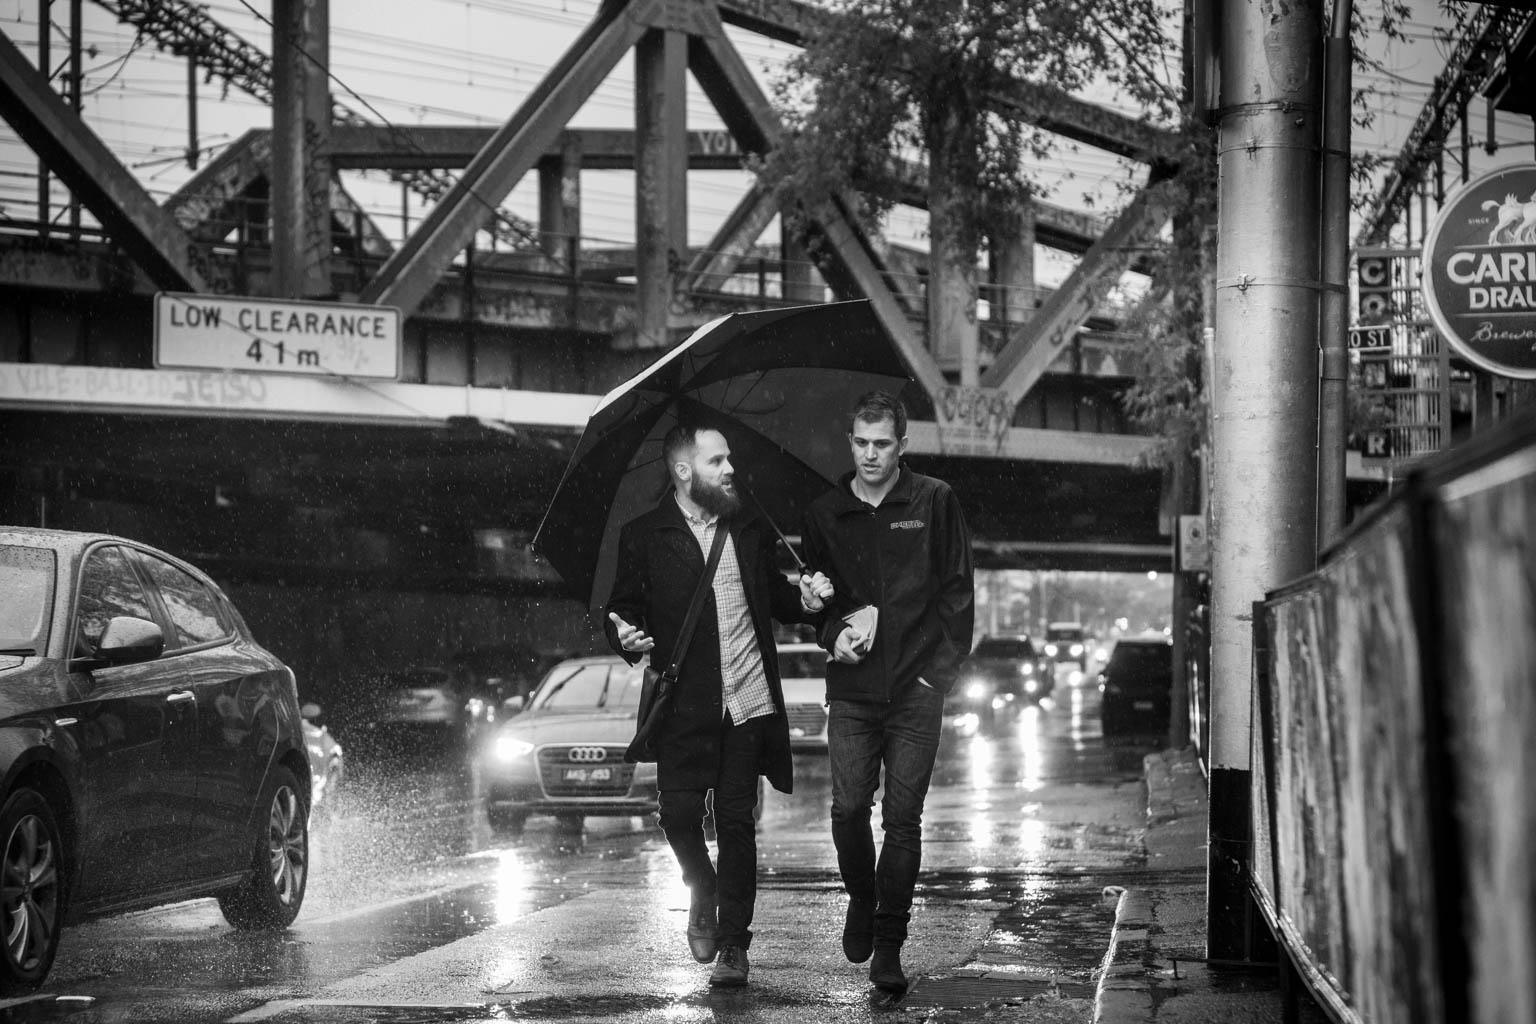 two men with umbrella walking on a cold rainy day in richmond